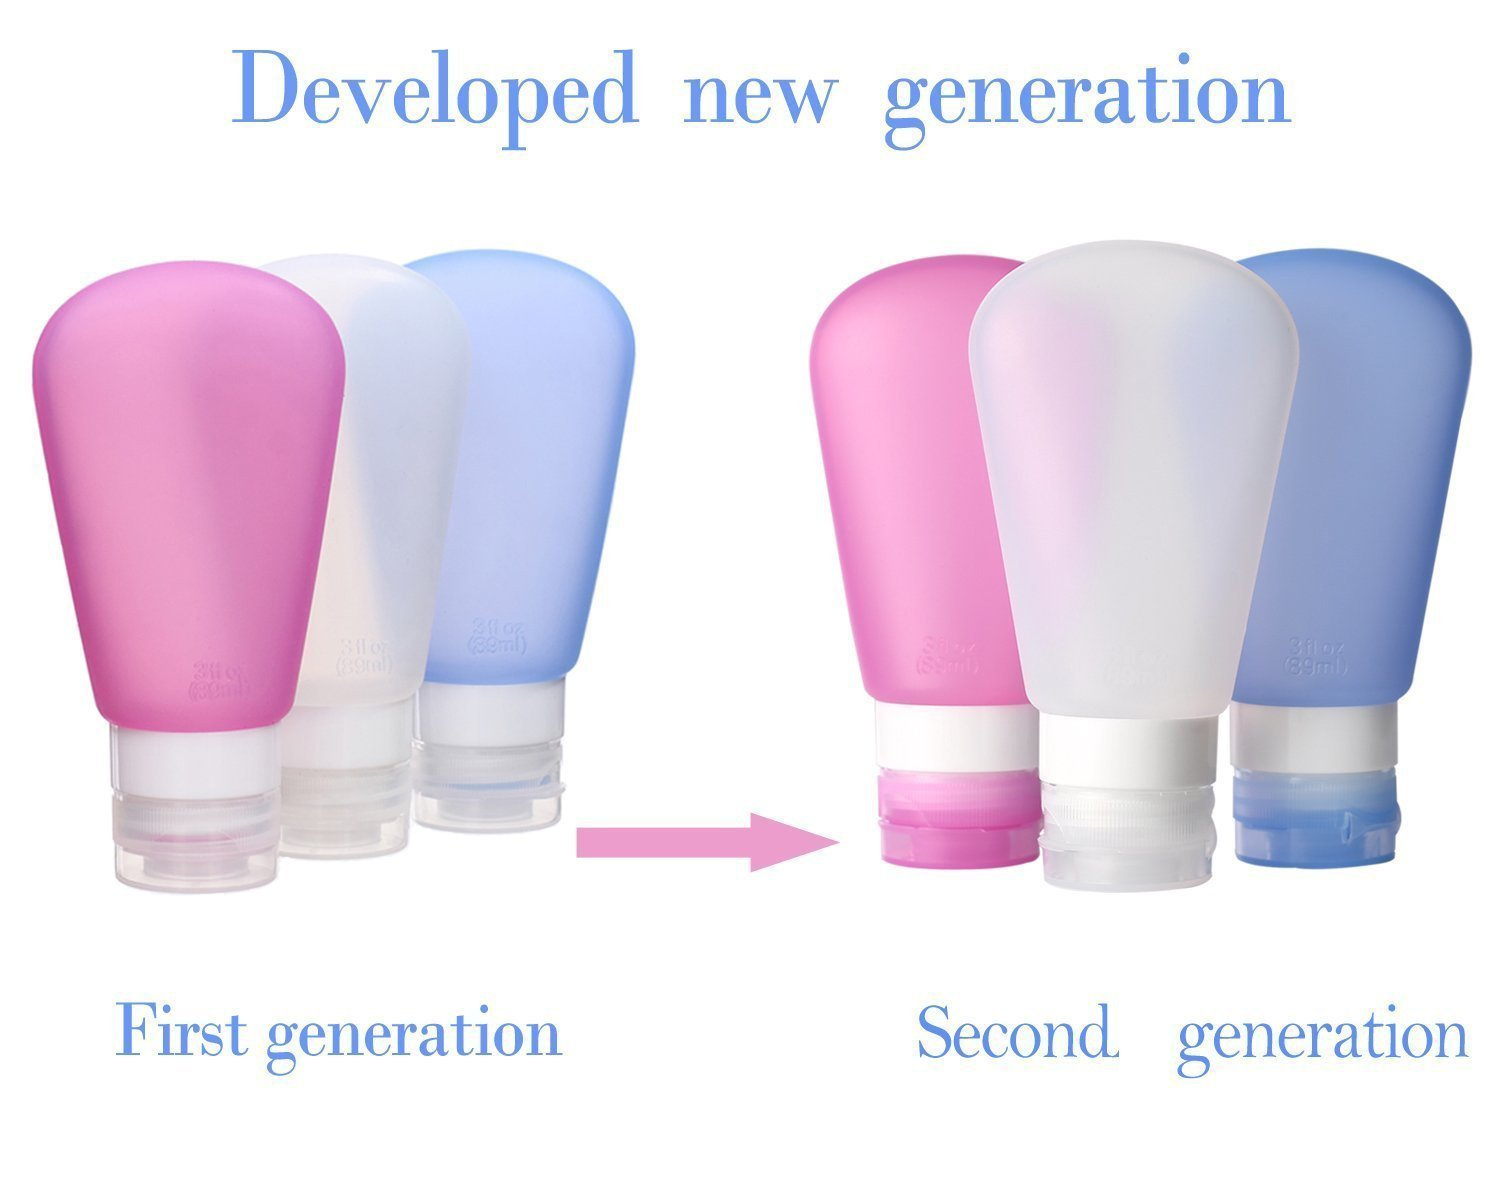 Kitdine Silicone Travel Bottles Squeezable & Refillable Travel Containers For Shampoo, Conditioner, Lotion, Toiletries -TSA Airline Carry-On Approved (Pink,White,Blue, 3oz)